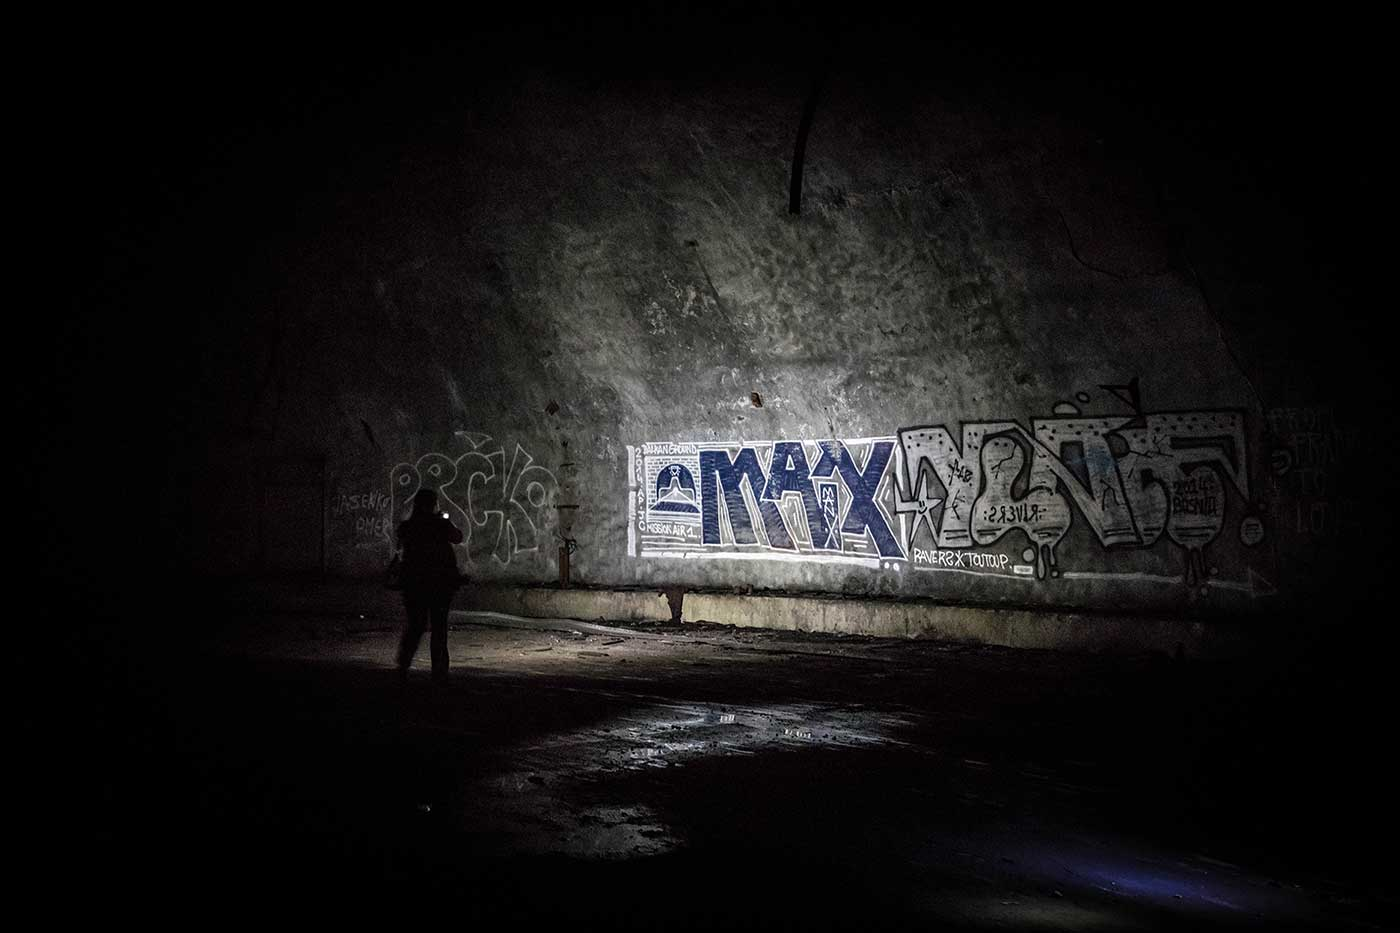 Graffiti inside the Željava complex. The deeper into the mountain you go, the less graffiti you find.